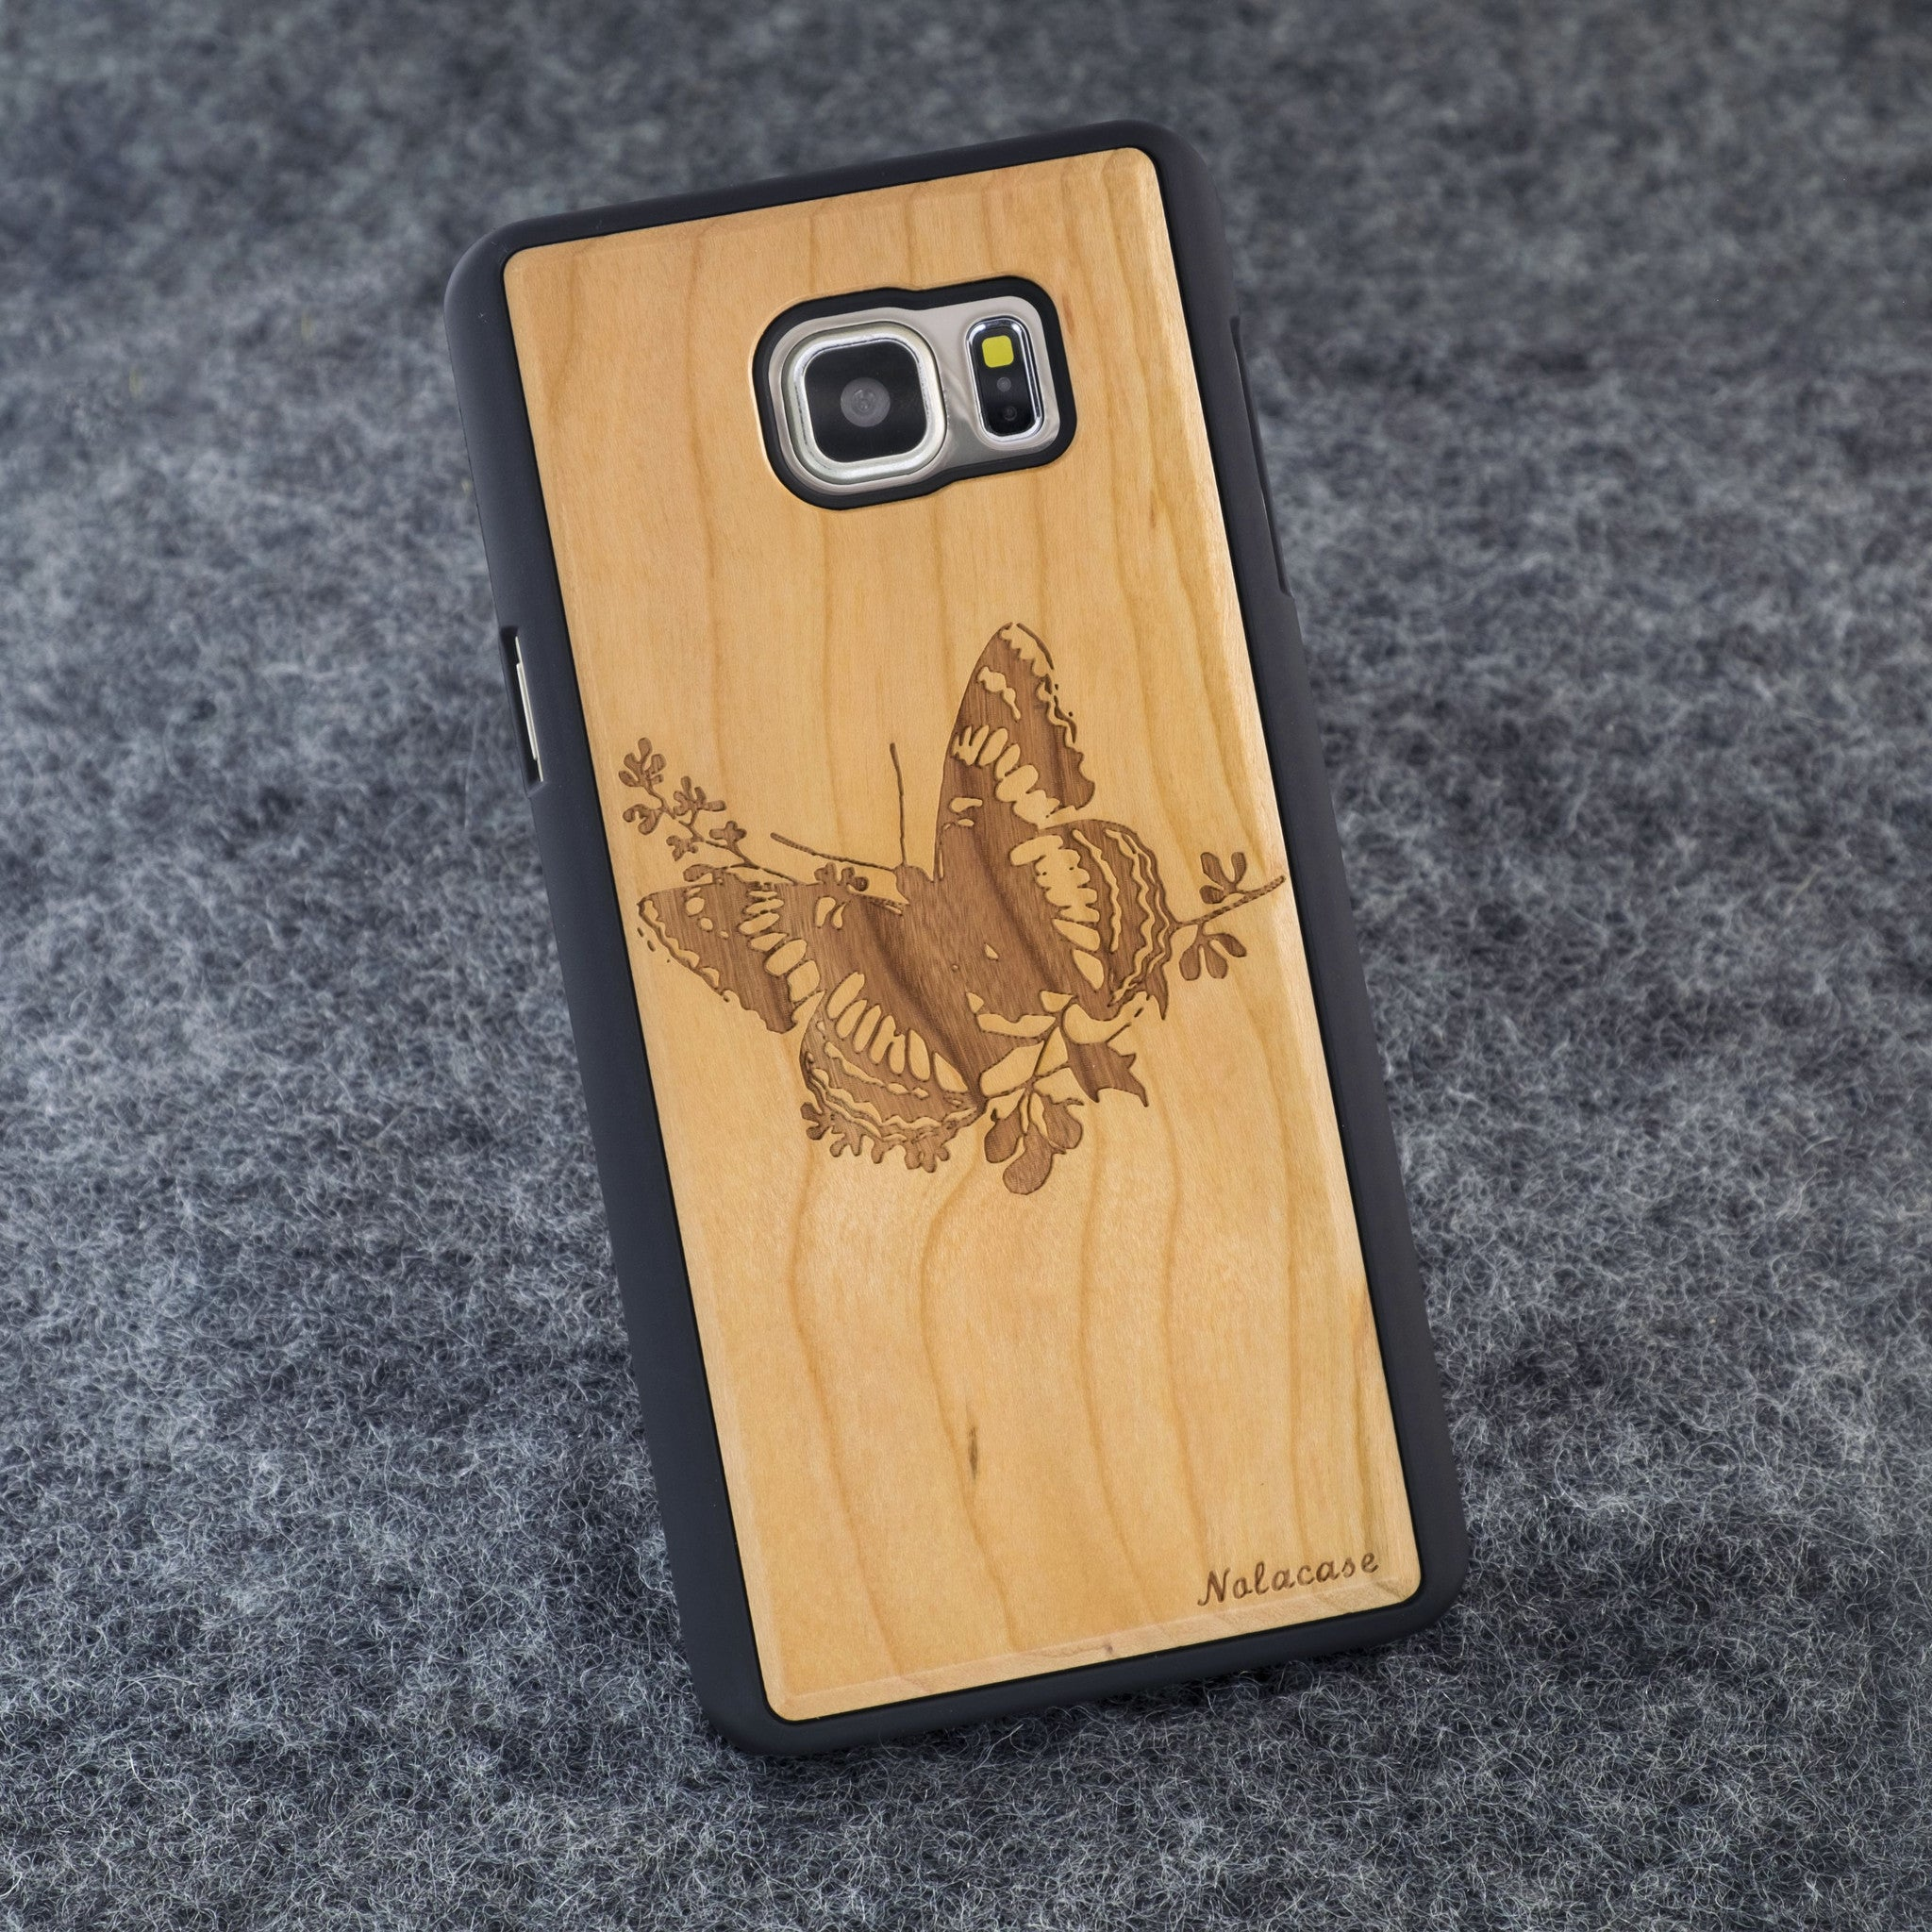 Samsung Note 5 Butterfly Slim Wood Case - NOLACASE